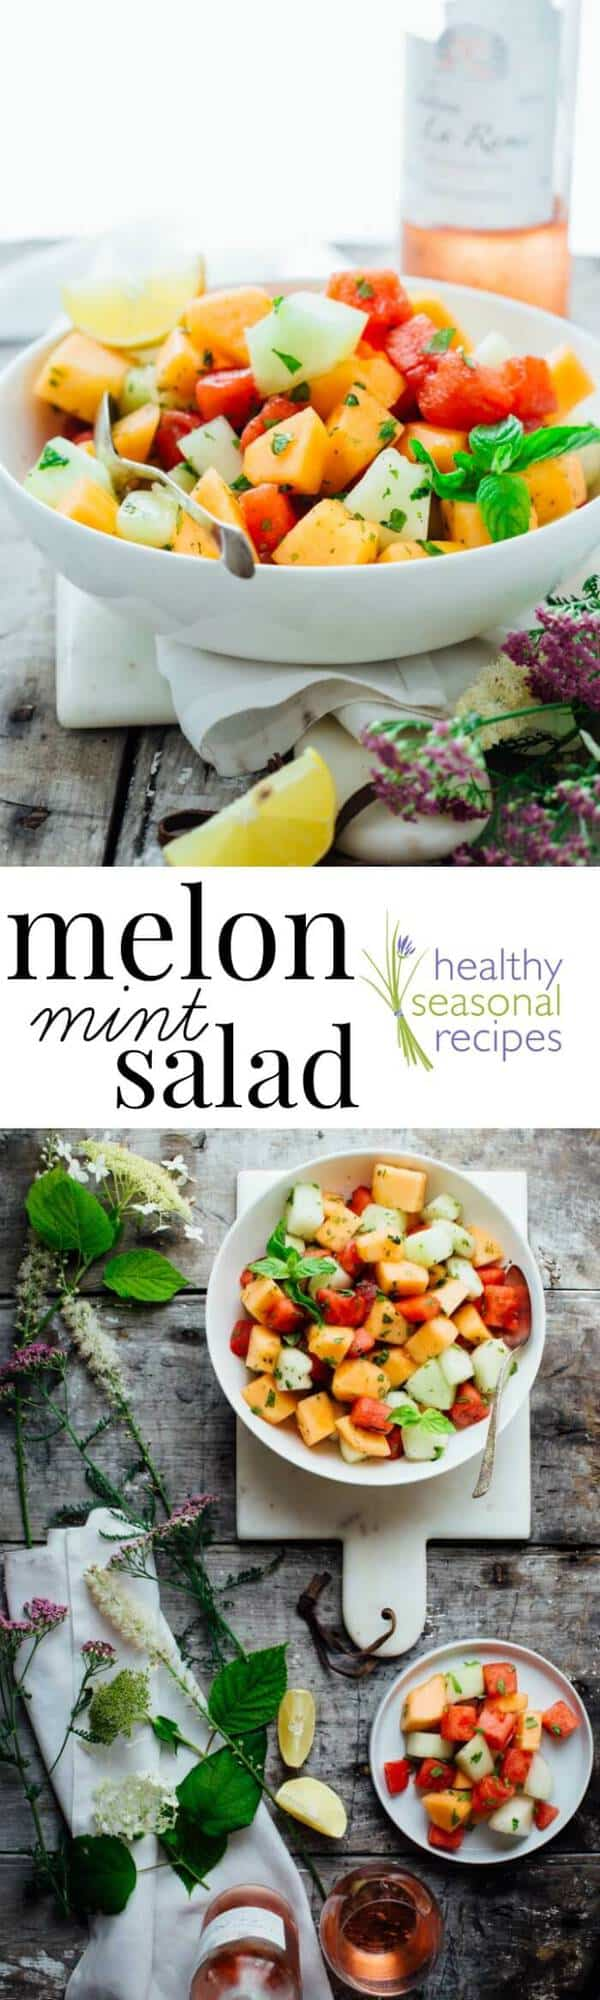 The 4 ingredient Melon and Mint Salad recipe I have for you today is utterly delicious in its simplicity. It takes just 10 minutes and is totally gluten free and dairy free! | Healthy Seasonal Recipes | Katie Webster #melon #fruitsalad #healthy #brinch #easter #fruit #mothersday #glutenfree #honey